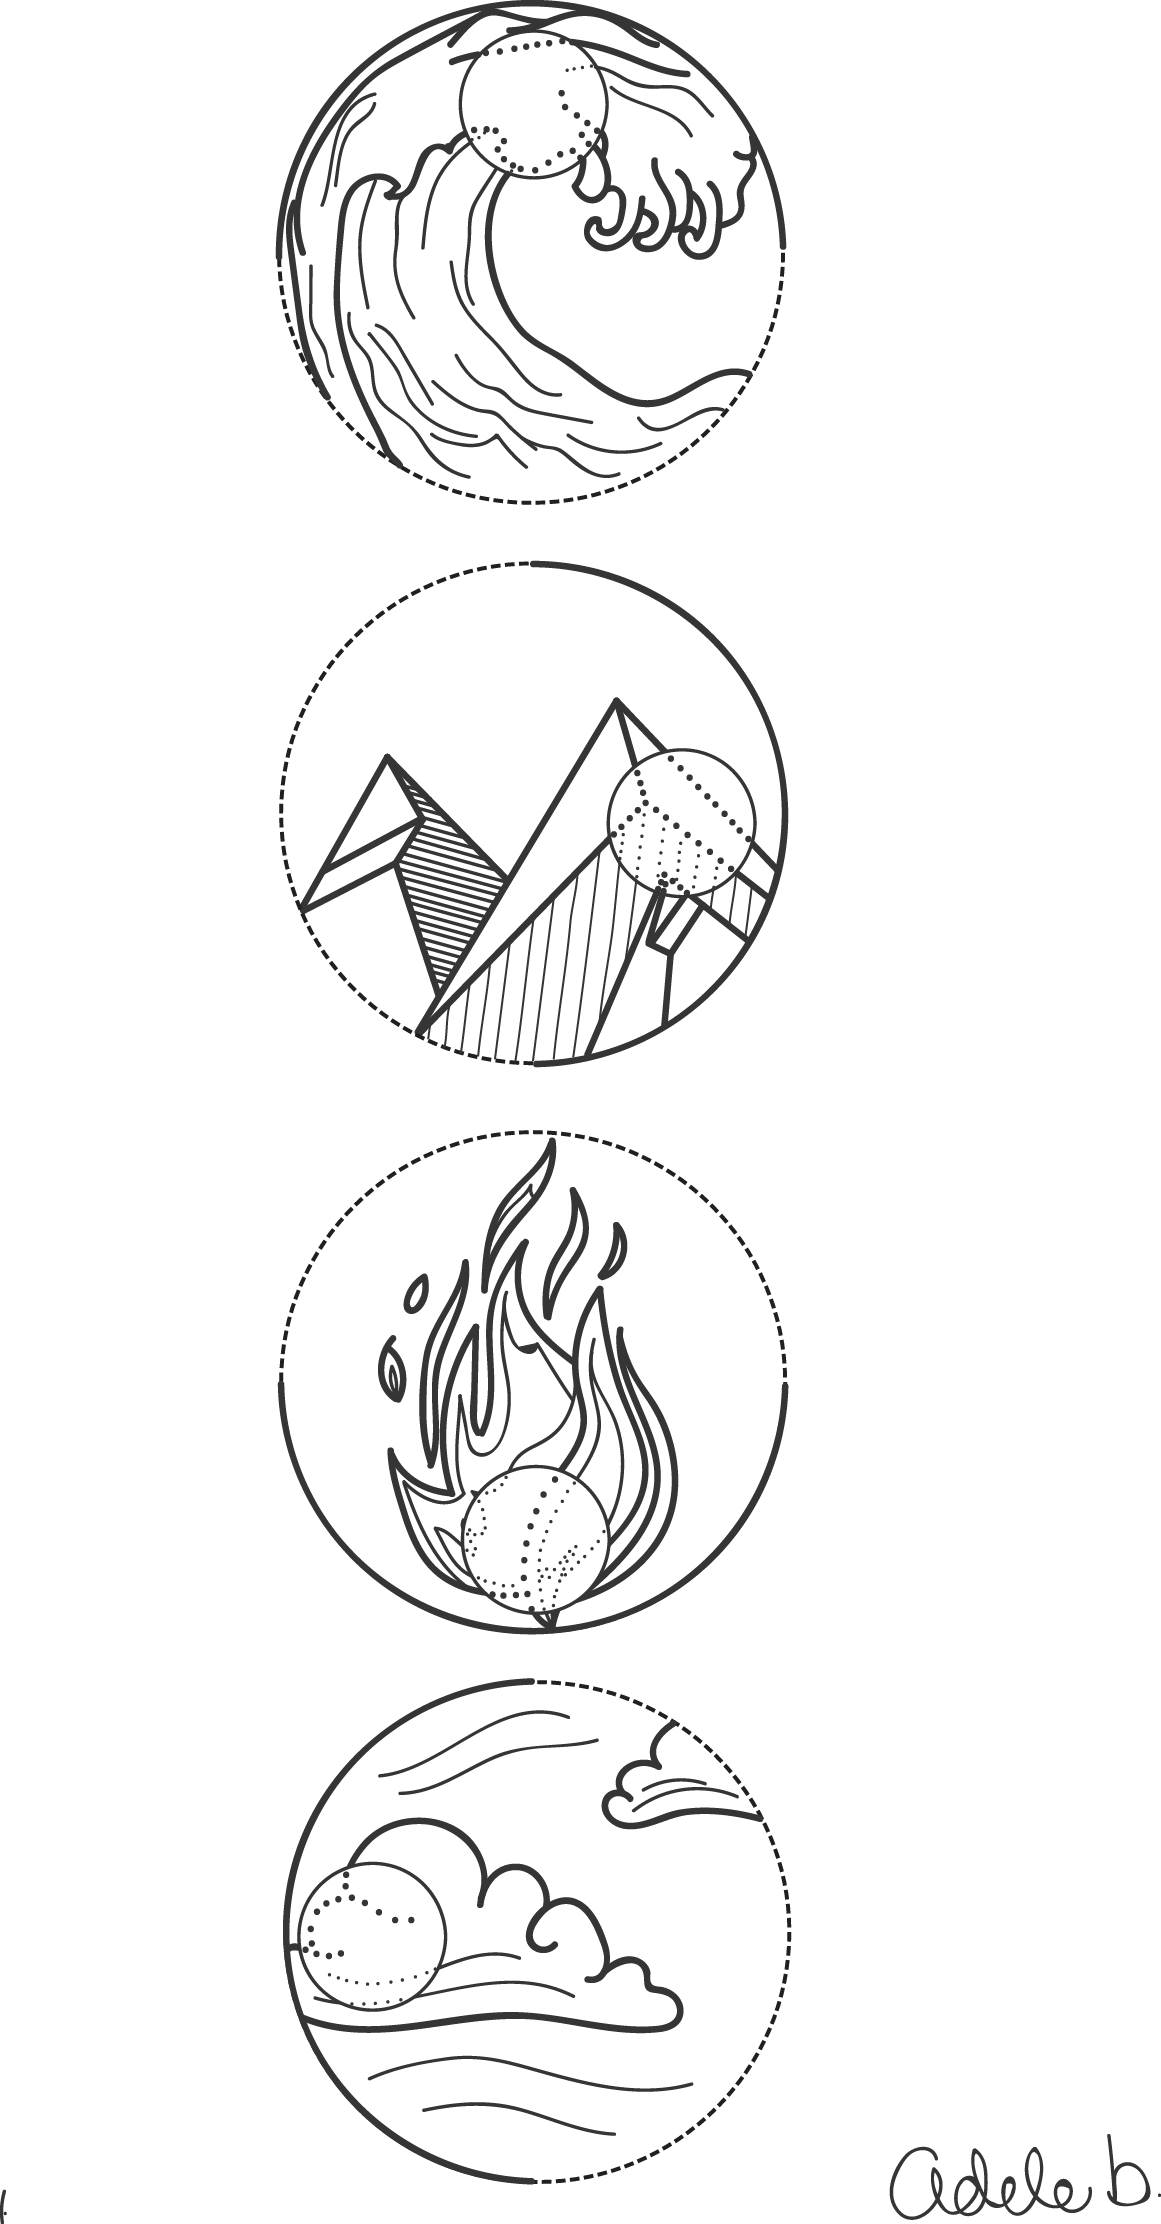 4 element symbols water earth fire and air tattoo idea no 1 drawn on illustrator tats. Black Bedroom Furniture Sets. Home Design Ideas